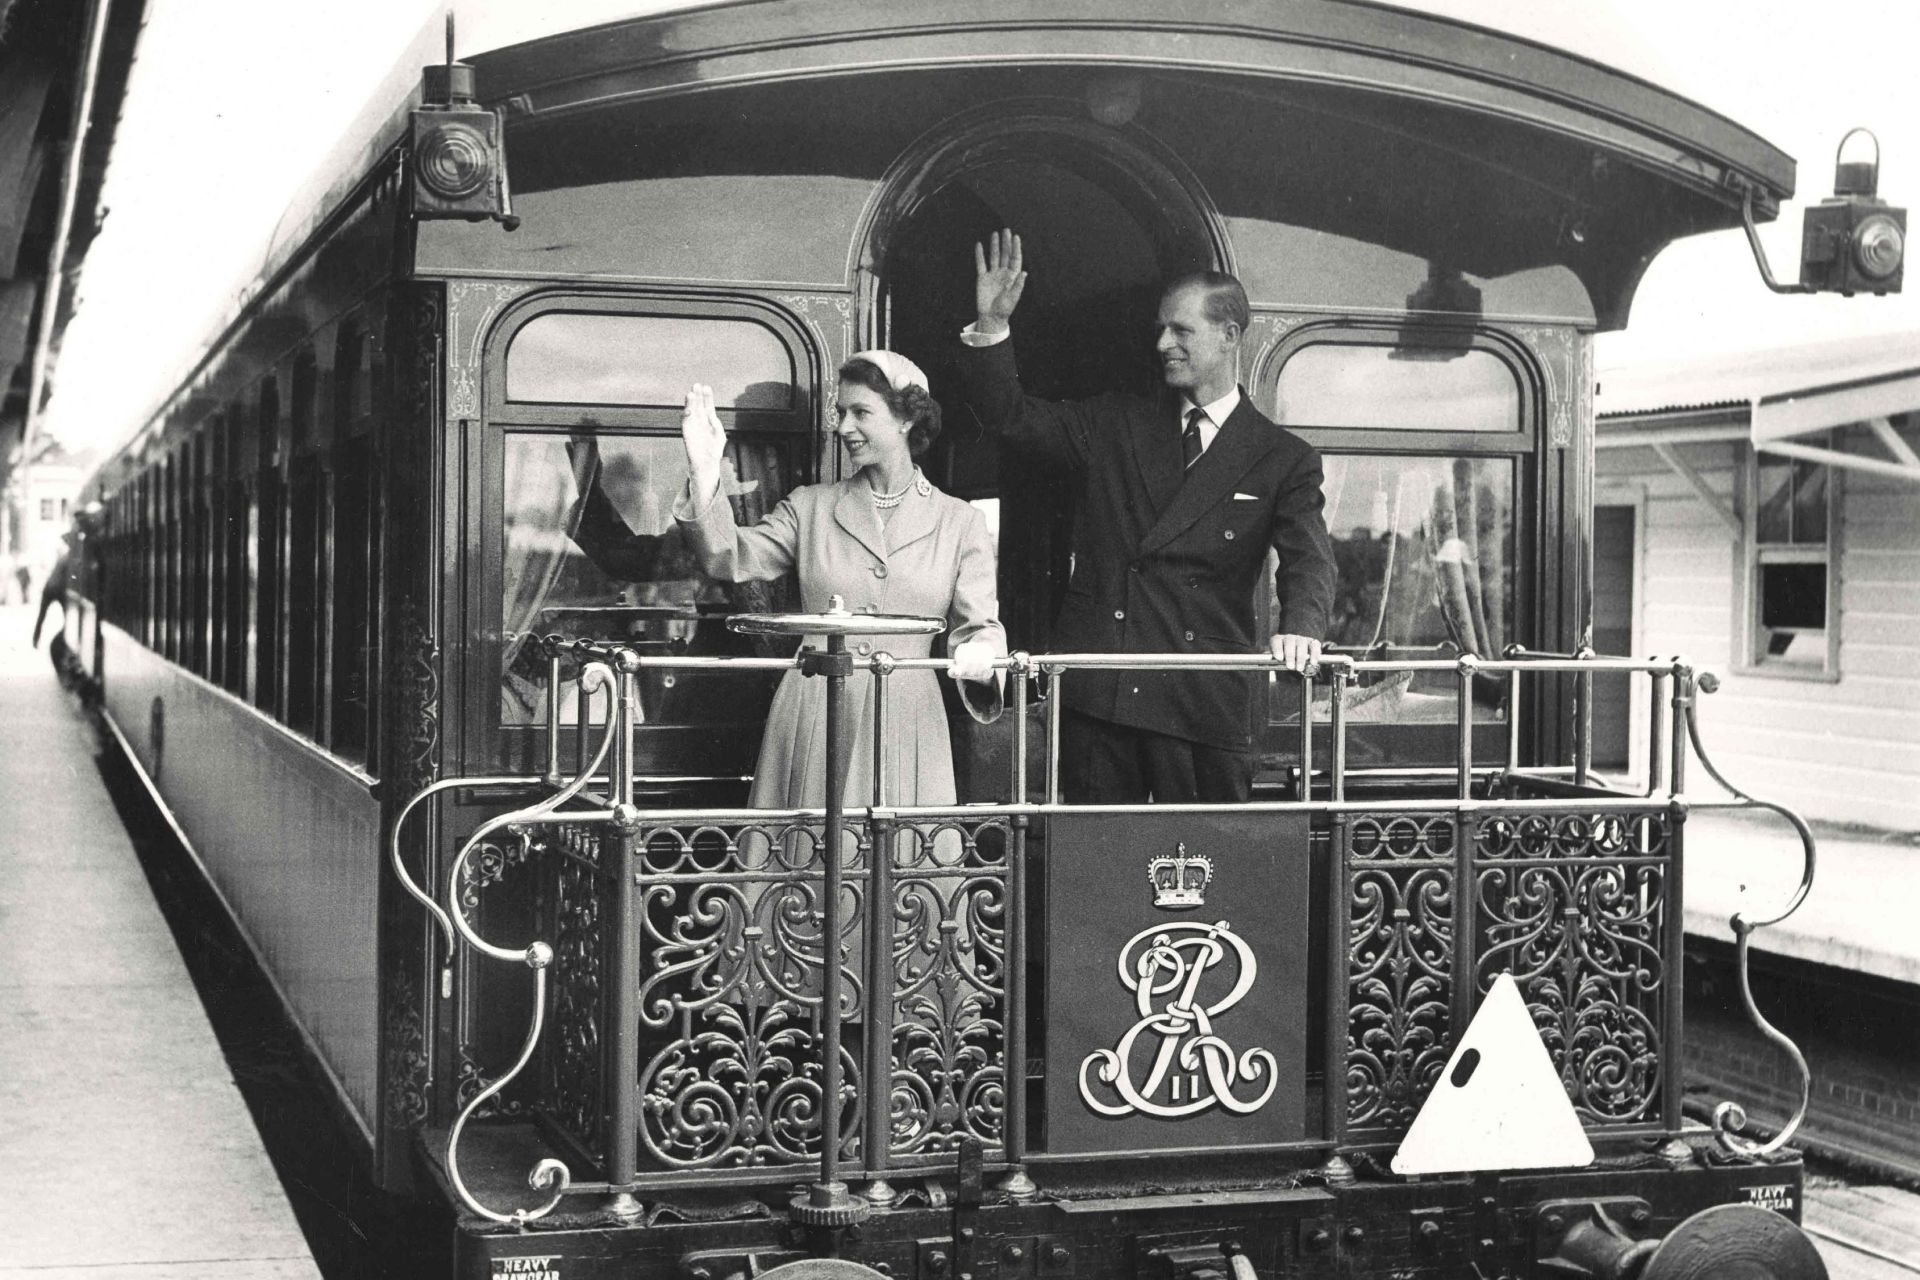 Five interesting facts about The Queen's private train